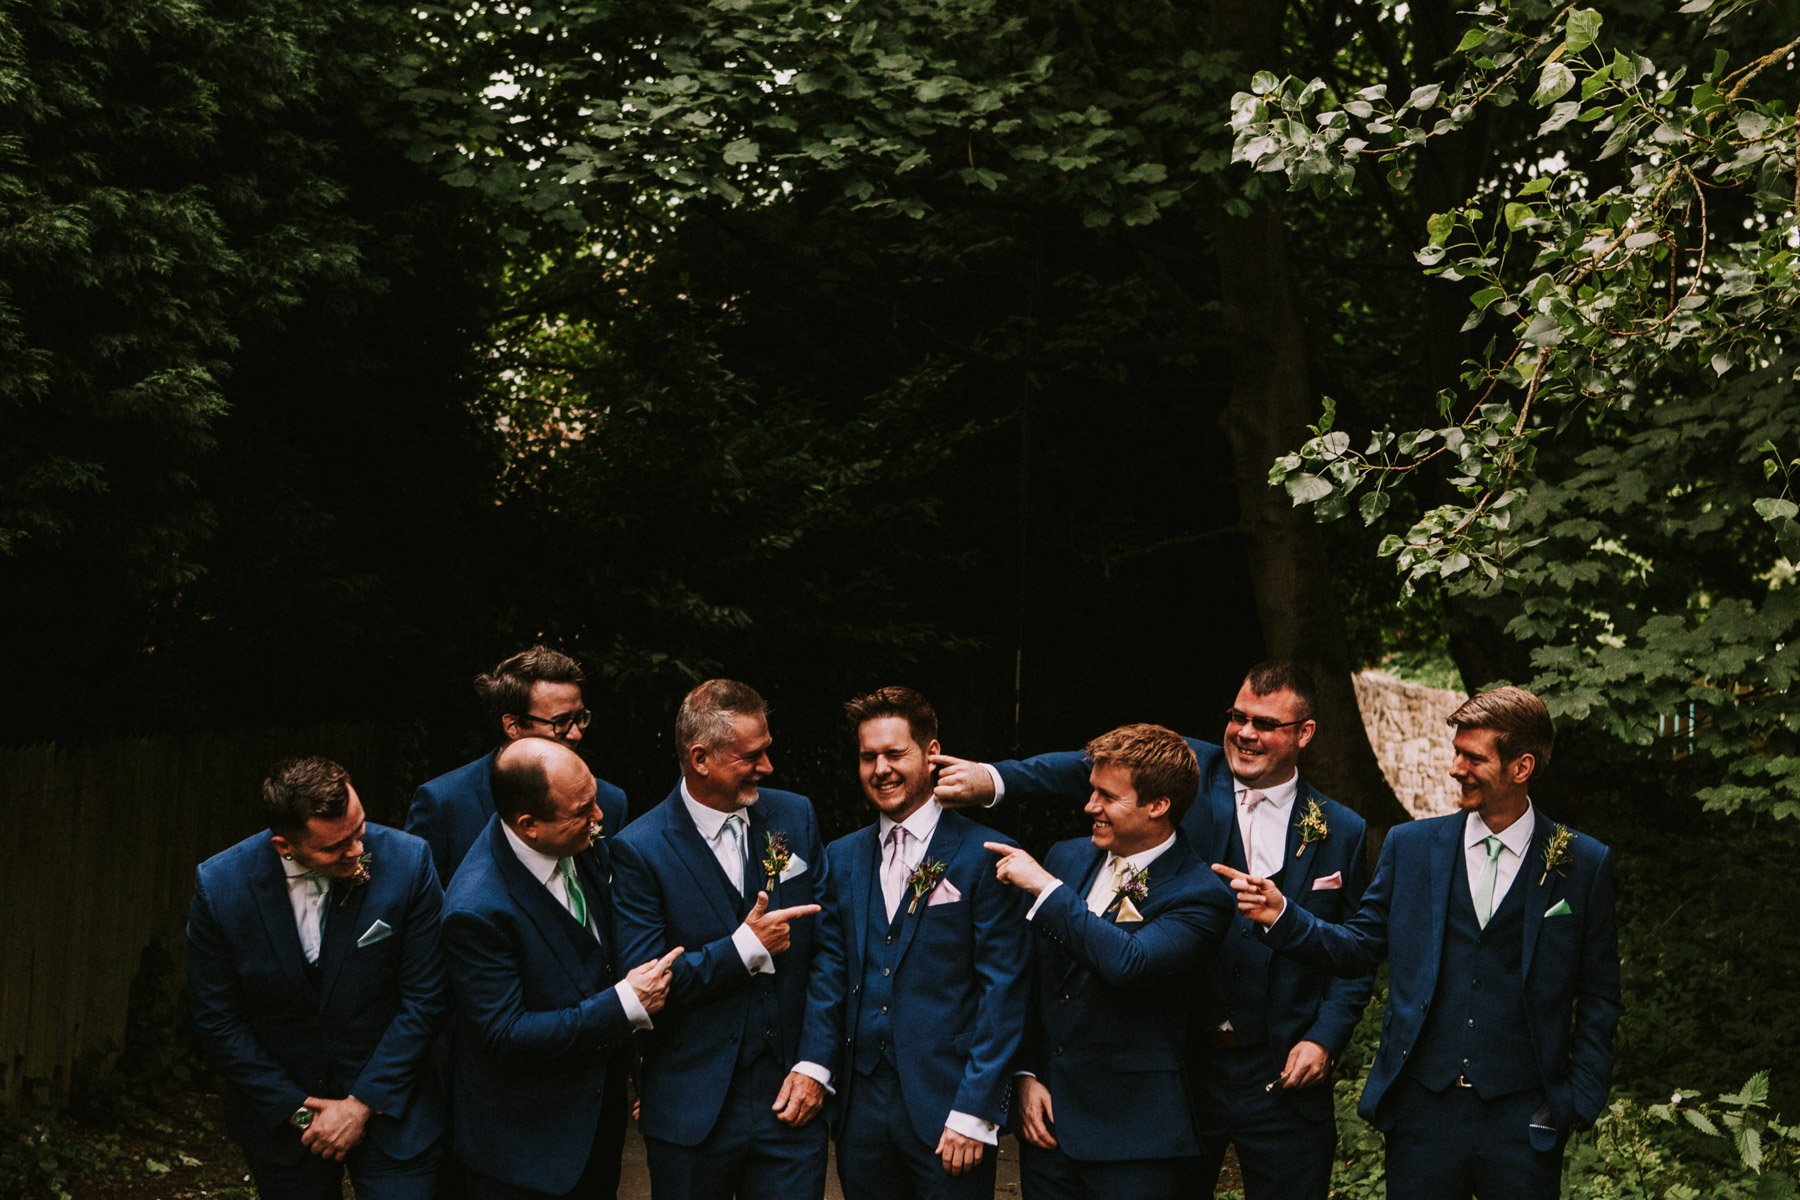 summerhill bowling club wedding - groom and groomsmen outdoor portrait